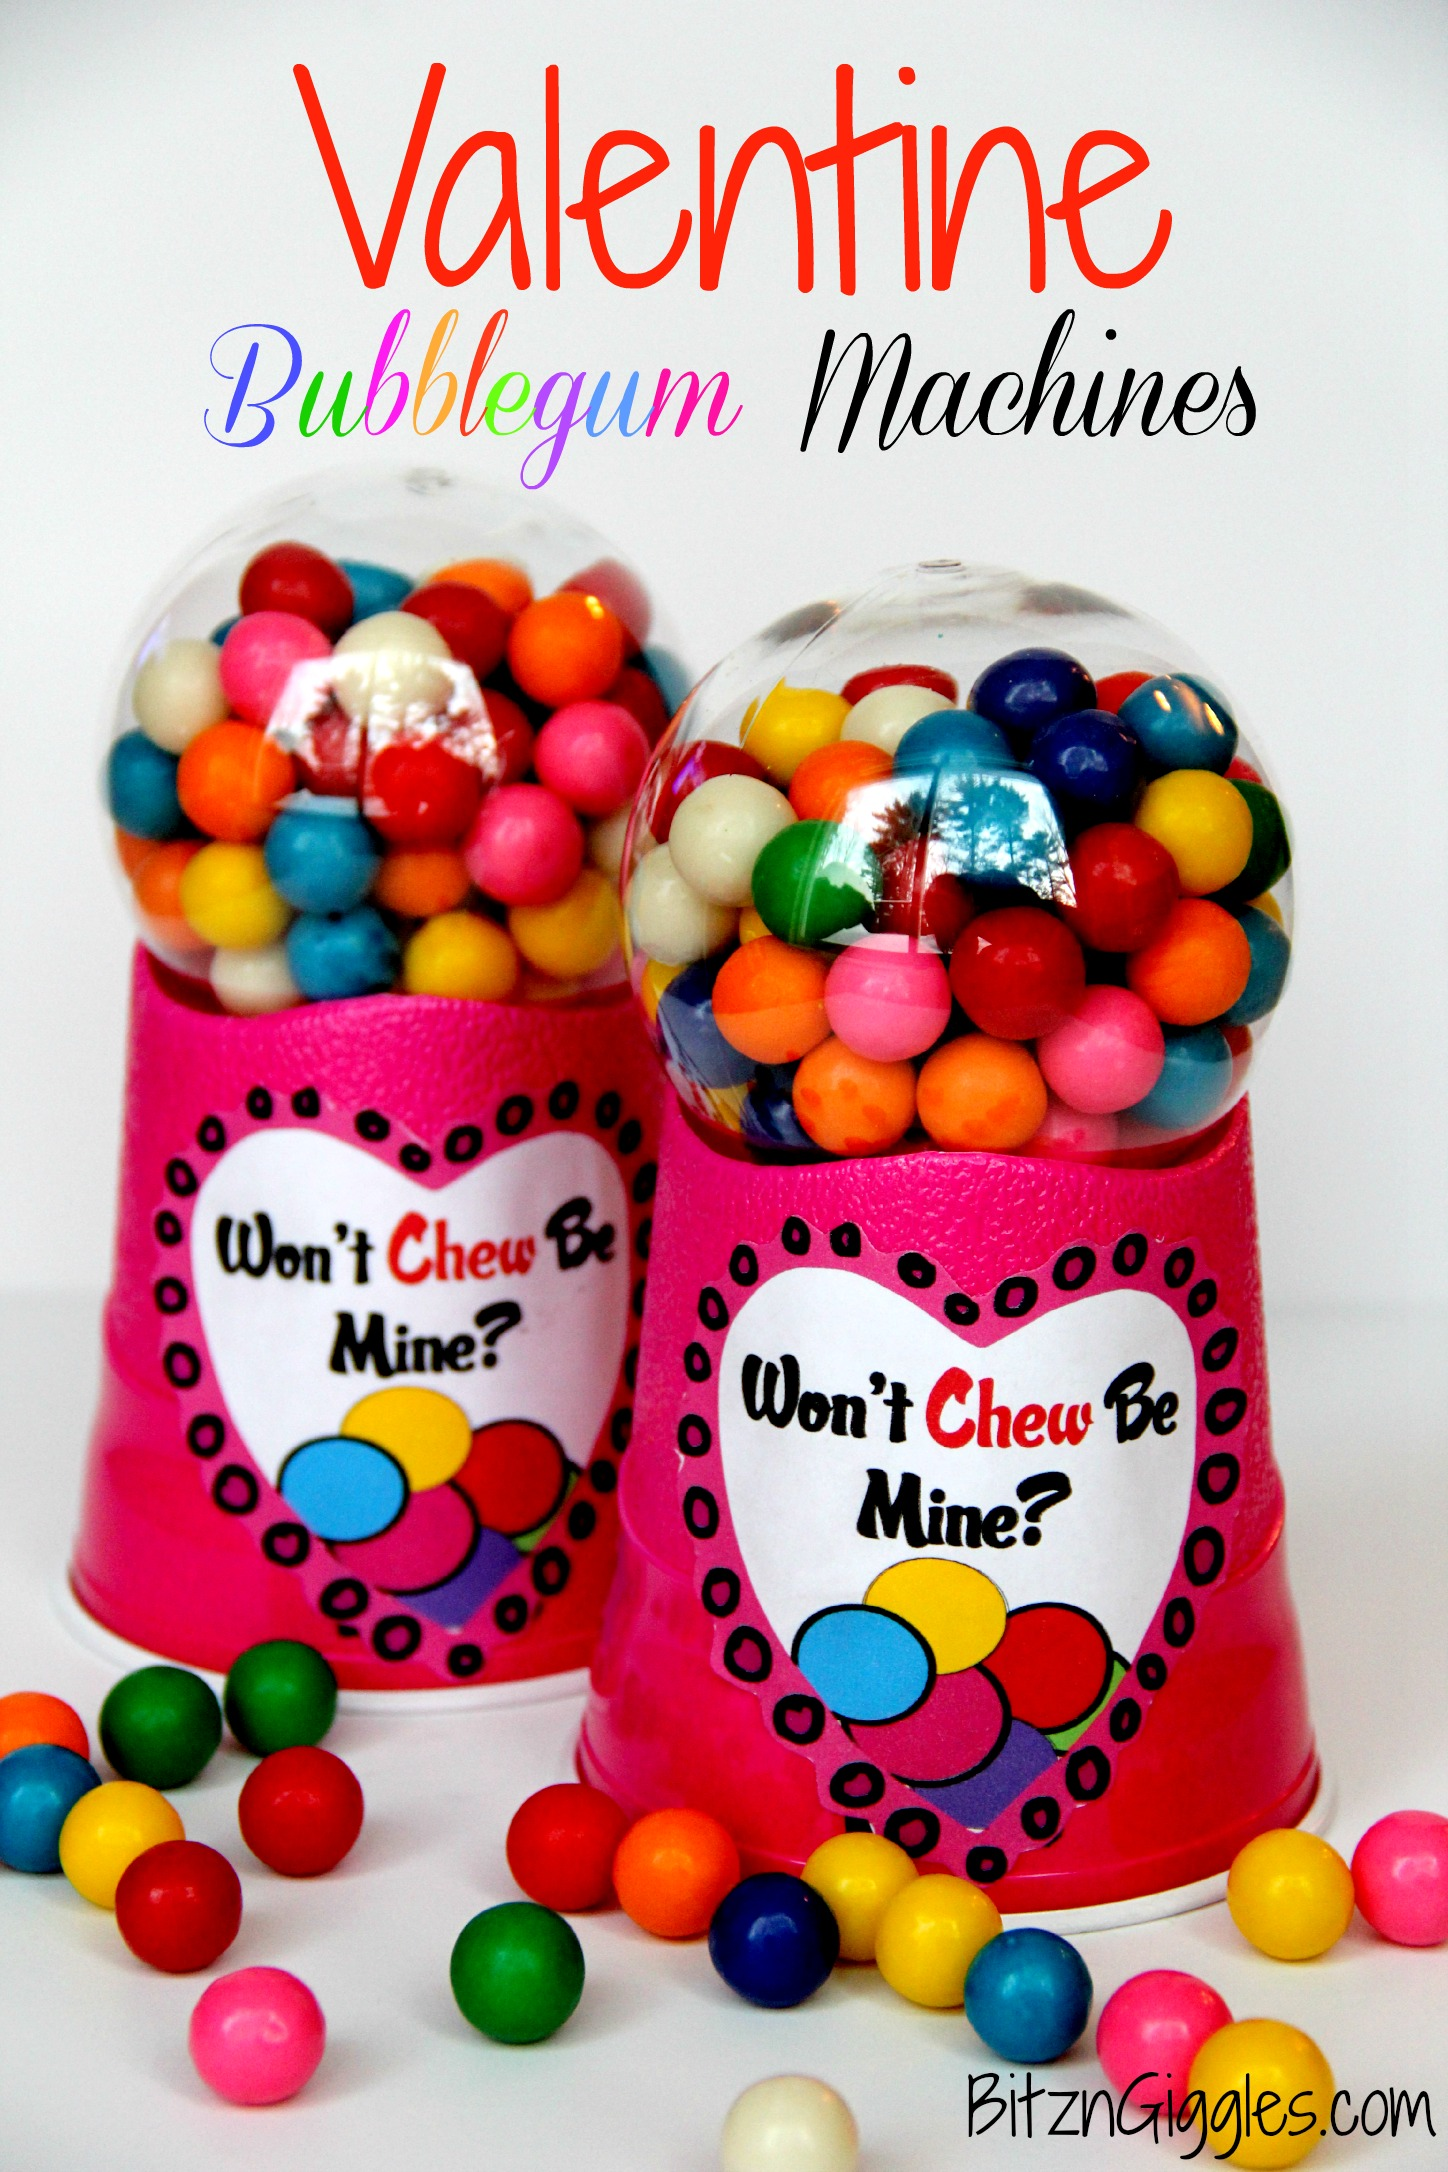 Valentine Bubblegum Machines -  These  DIY bubblegum machines are sure to make your Valentine smile!! They're so easy to make!